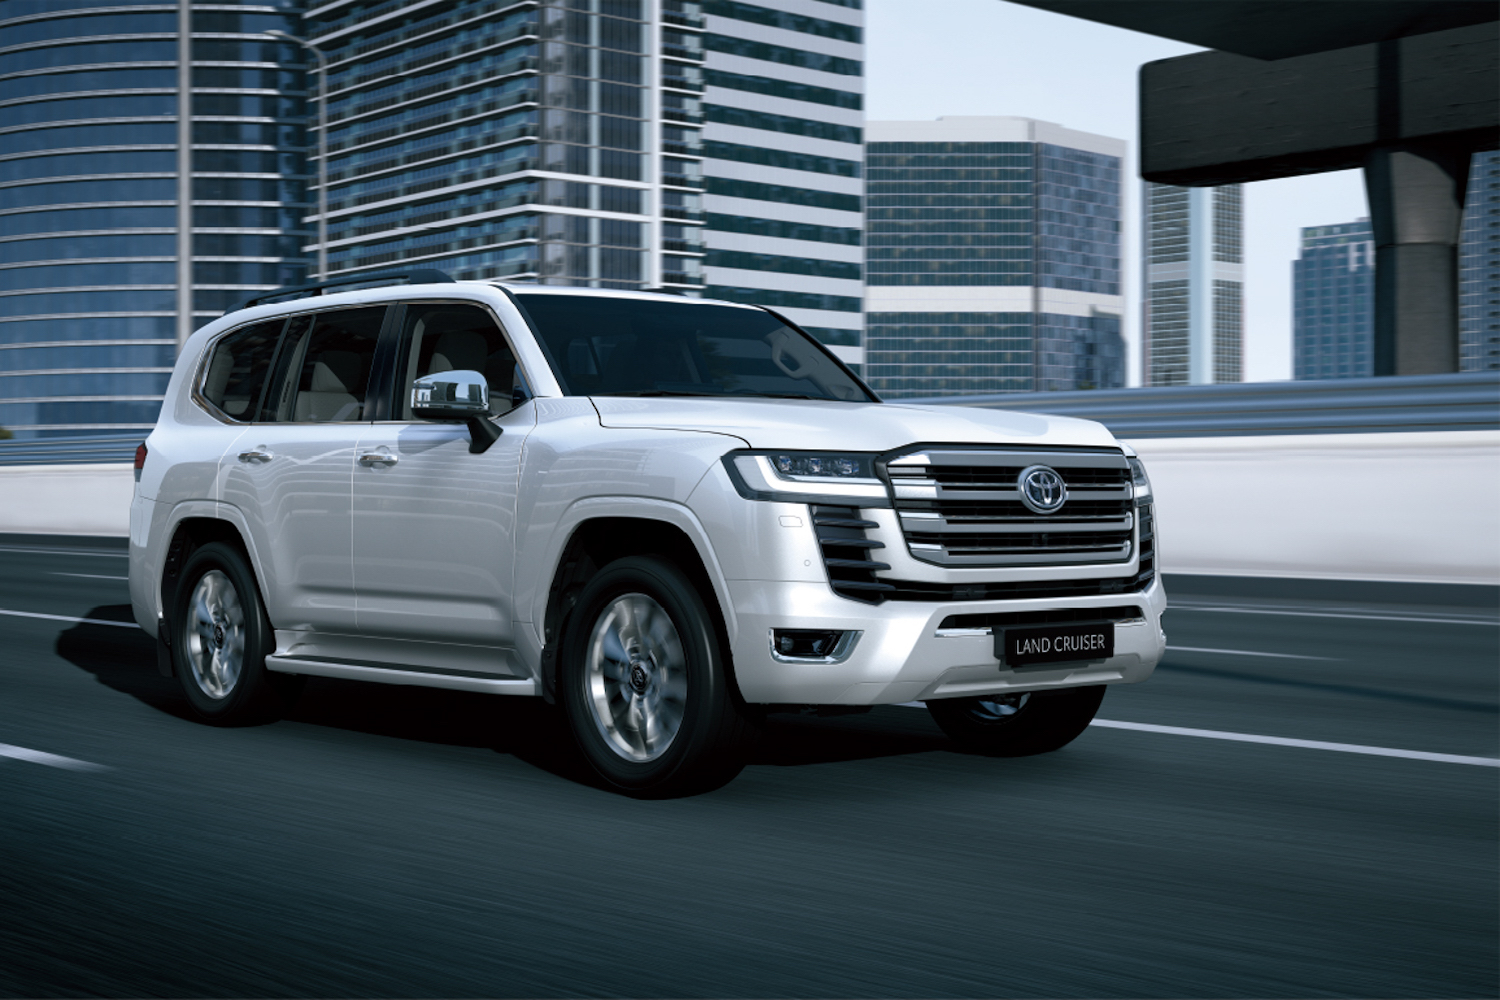 Car News | All-new Toyota Land Cruiser not for Ireland | CompleteCar.ie